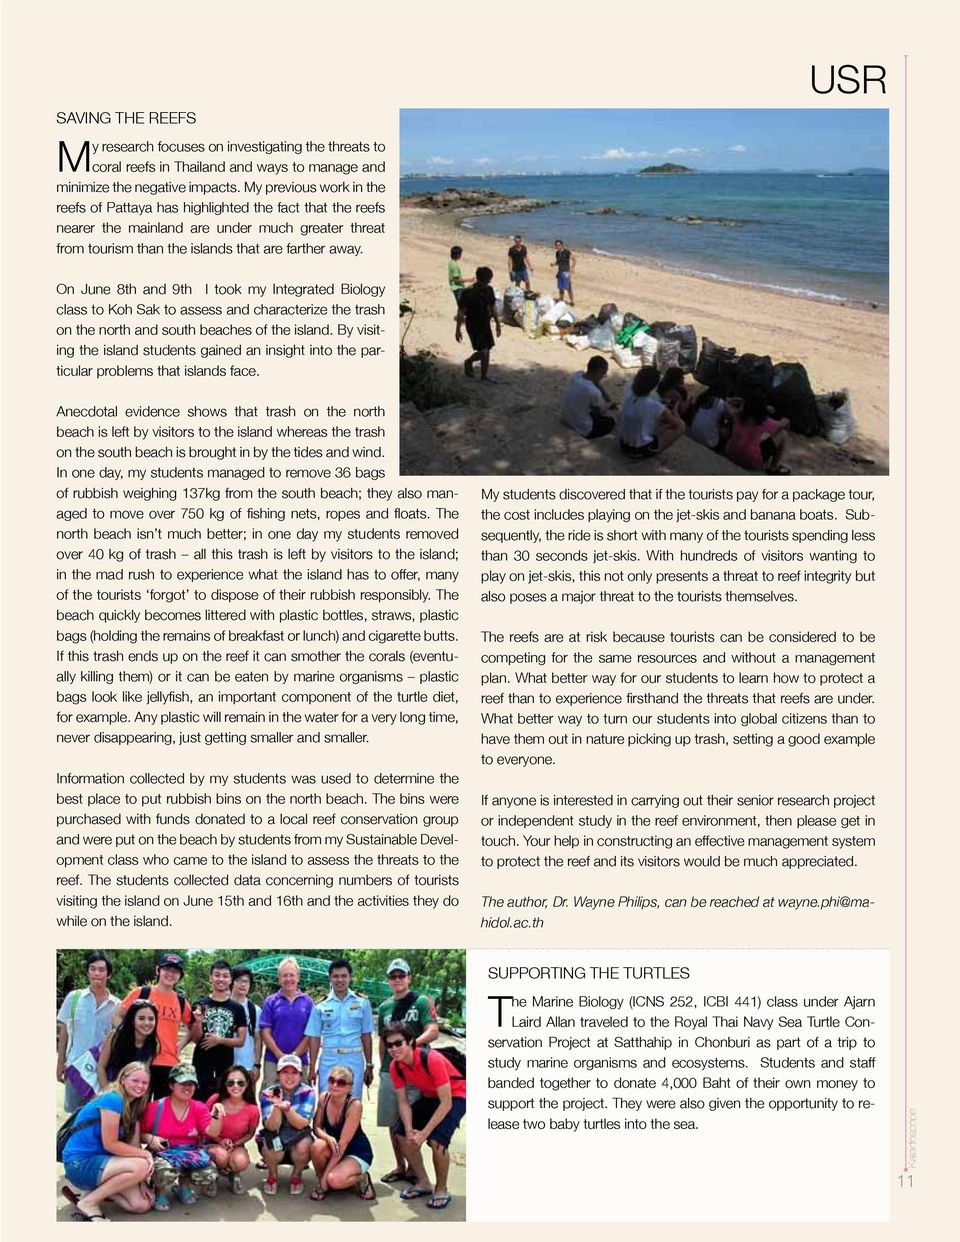 USR On June 8th and 9th I took my Integrated Biology class to Koh Sak to assess and characterize the trash on the north and south beaches of the island.